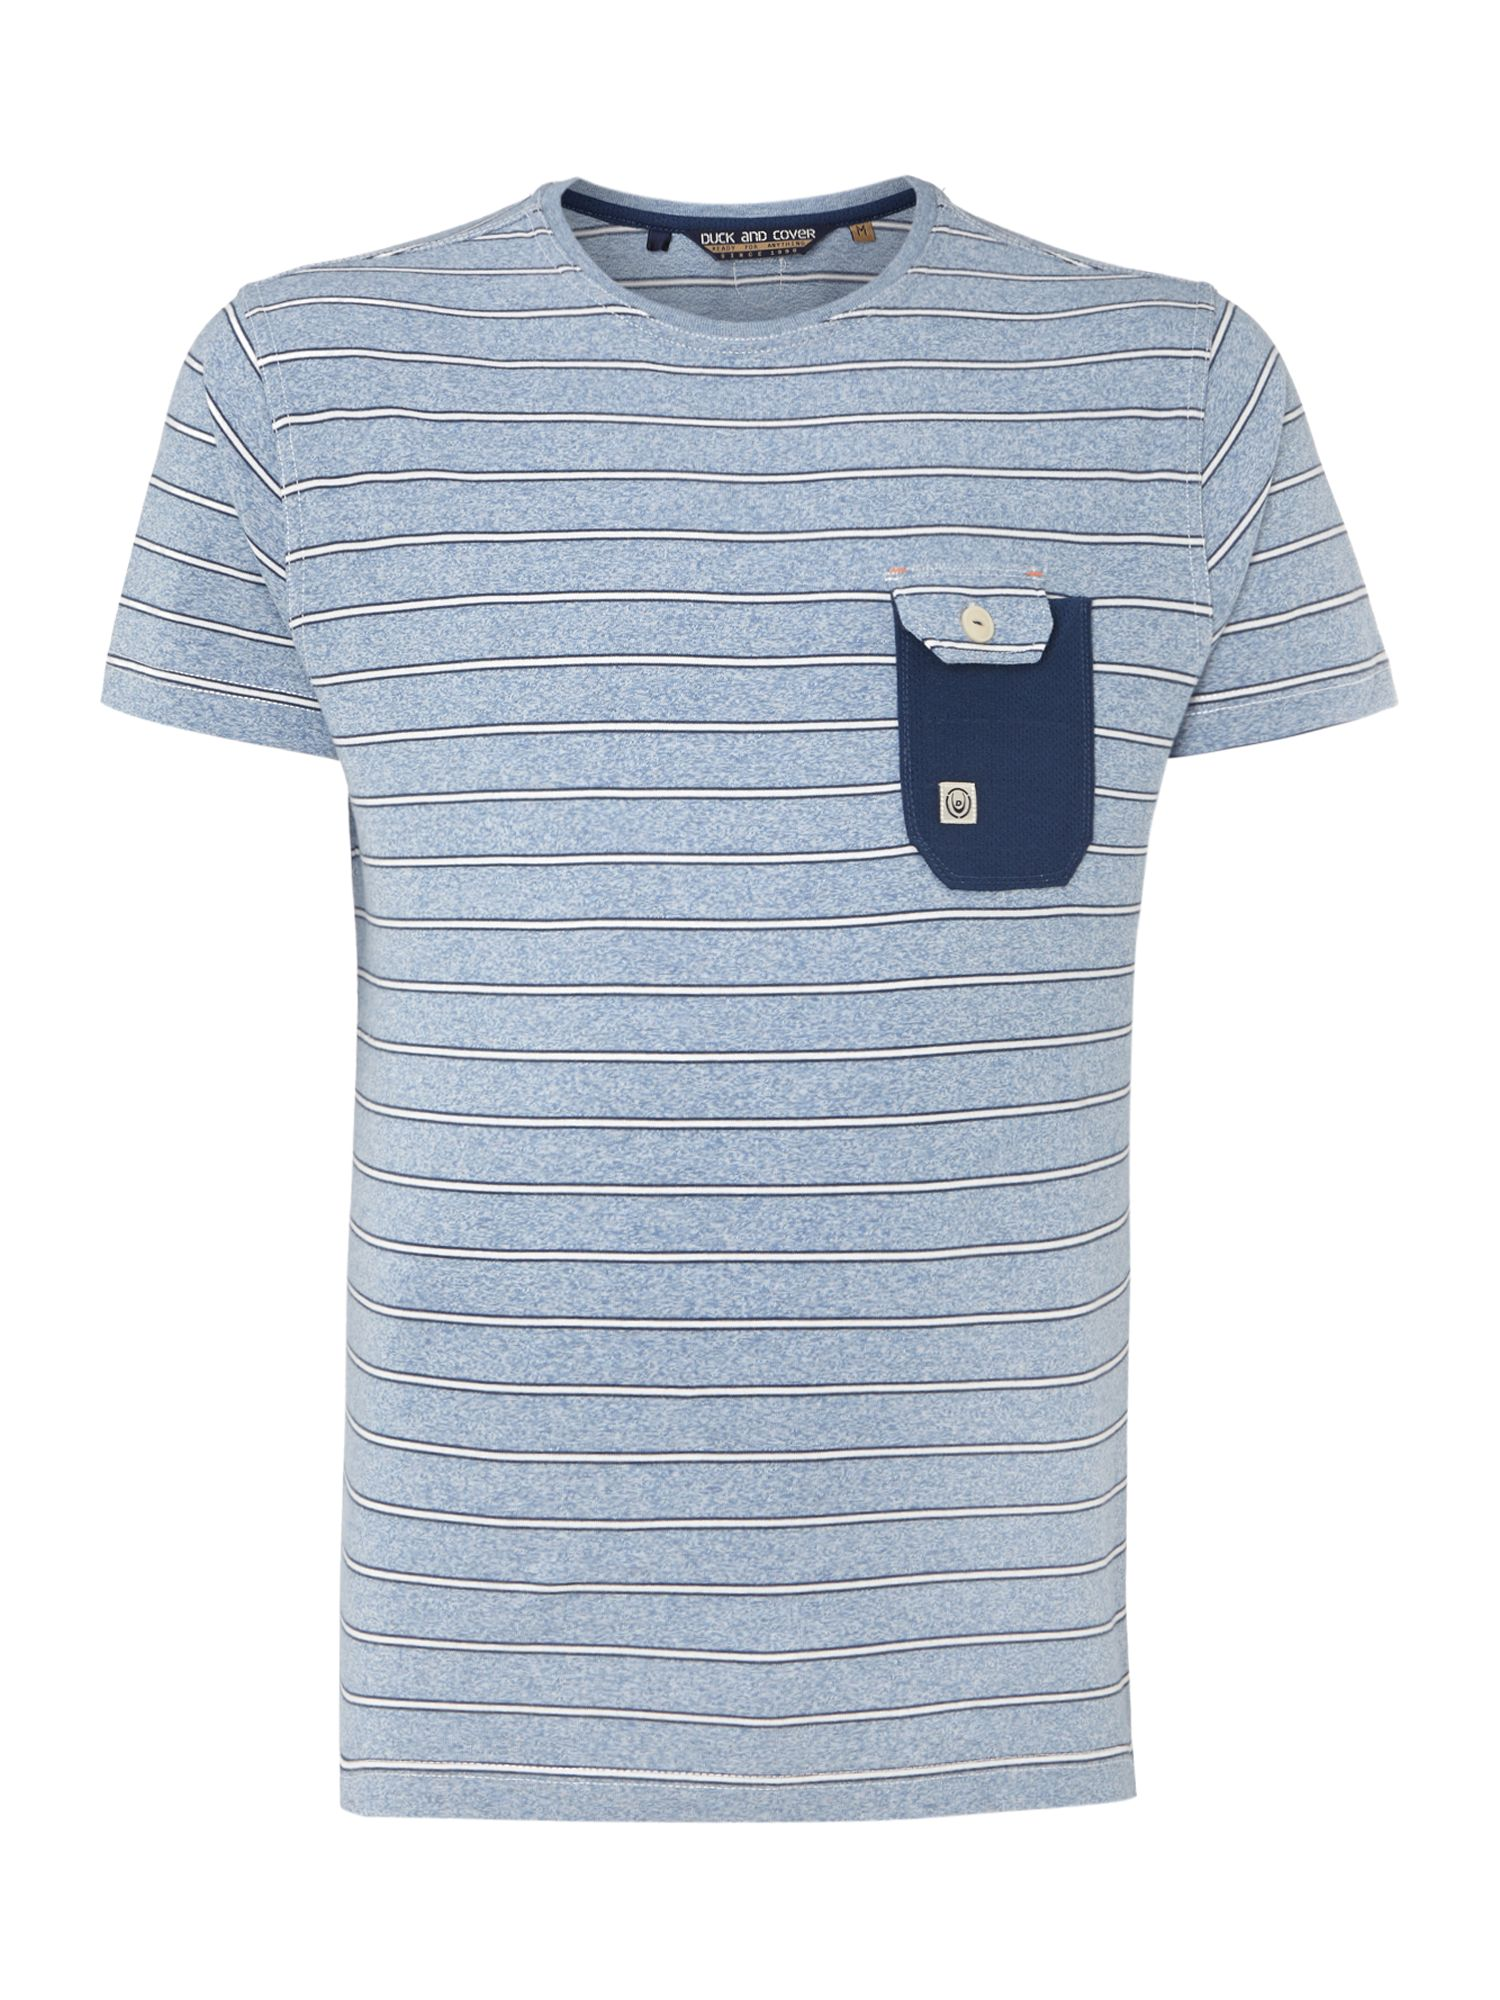 Patten striped grindle t-shirt